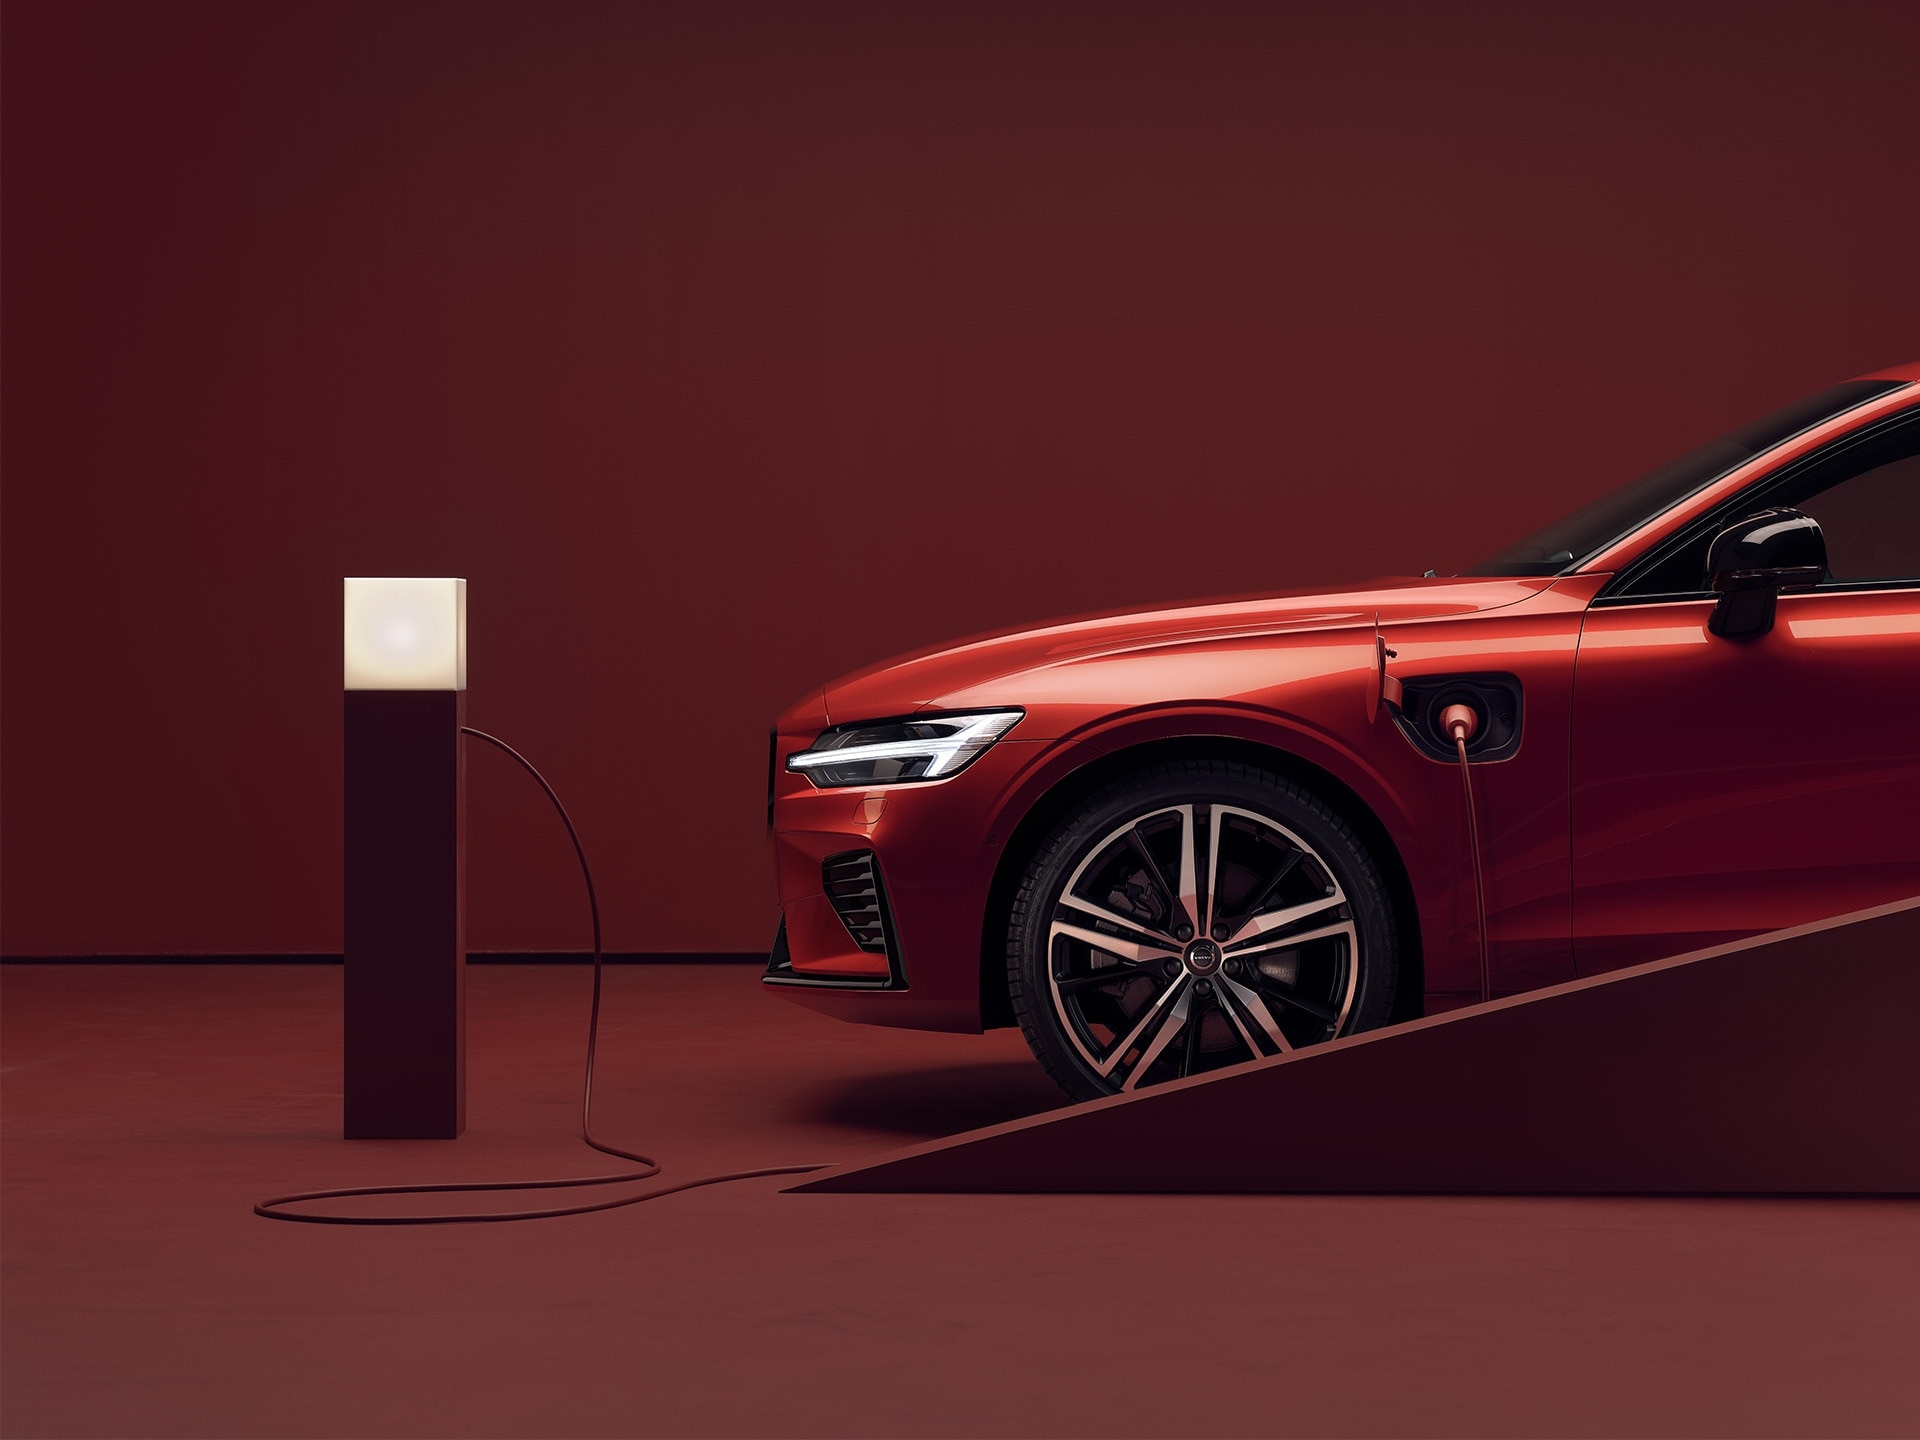 A parked red Volvo sedan is plugged into a charging point